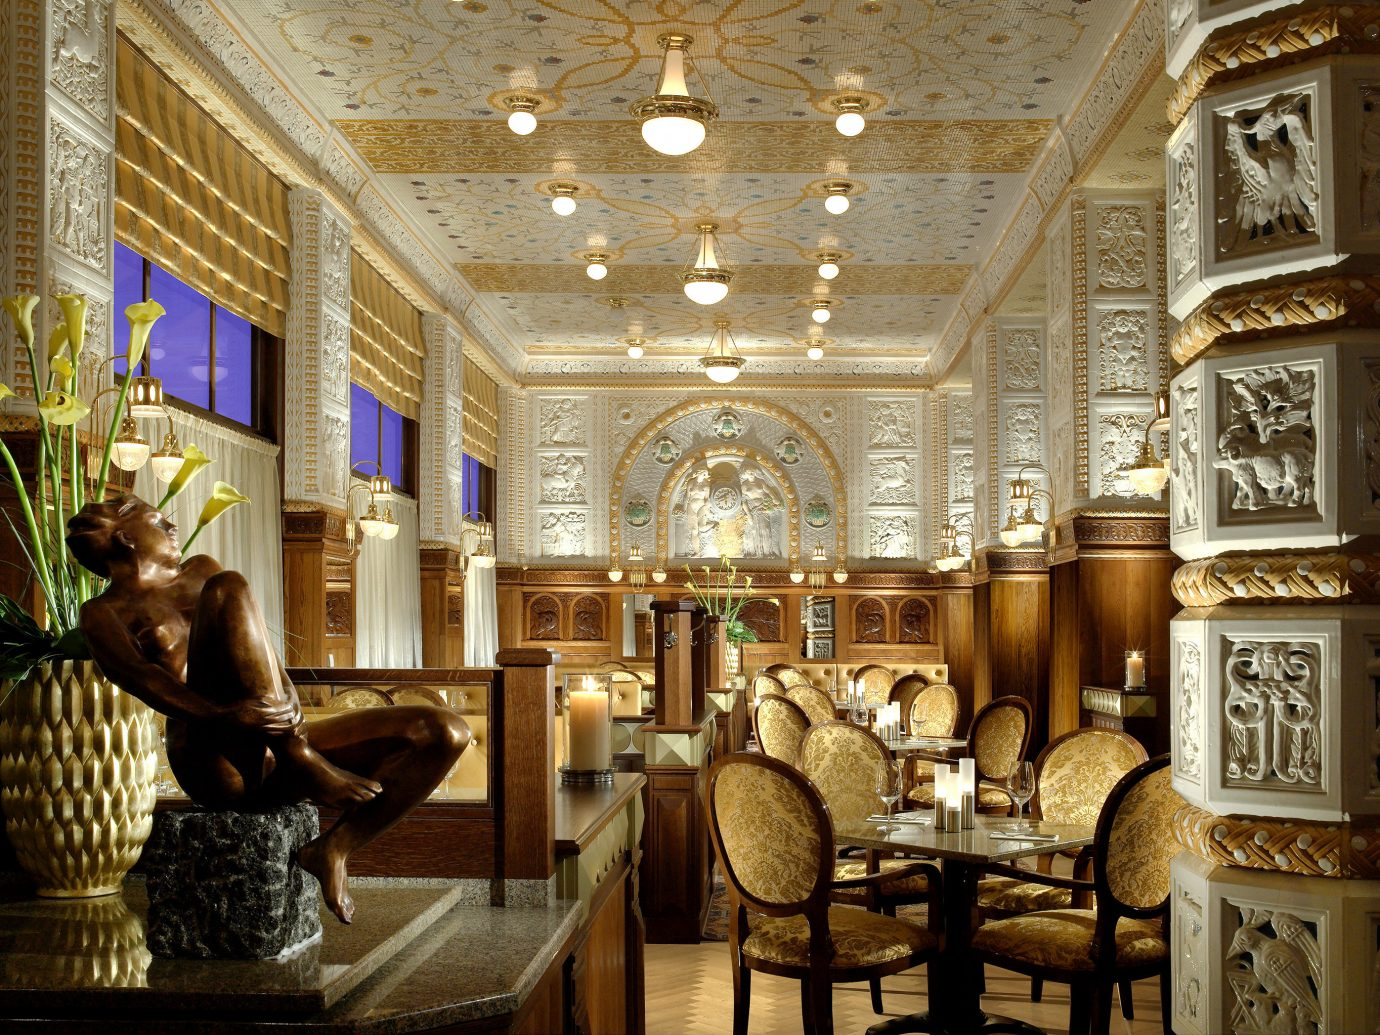 Austria Bar Budget Dining Drink Eat Elegant europe Hotels Vienna indoor Lobby building ceiling estate palace interior design ancient history ballroom mansion synagogue tourist attraction furniture several